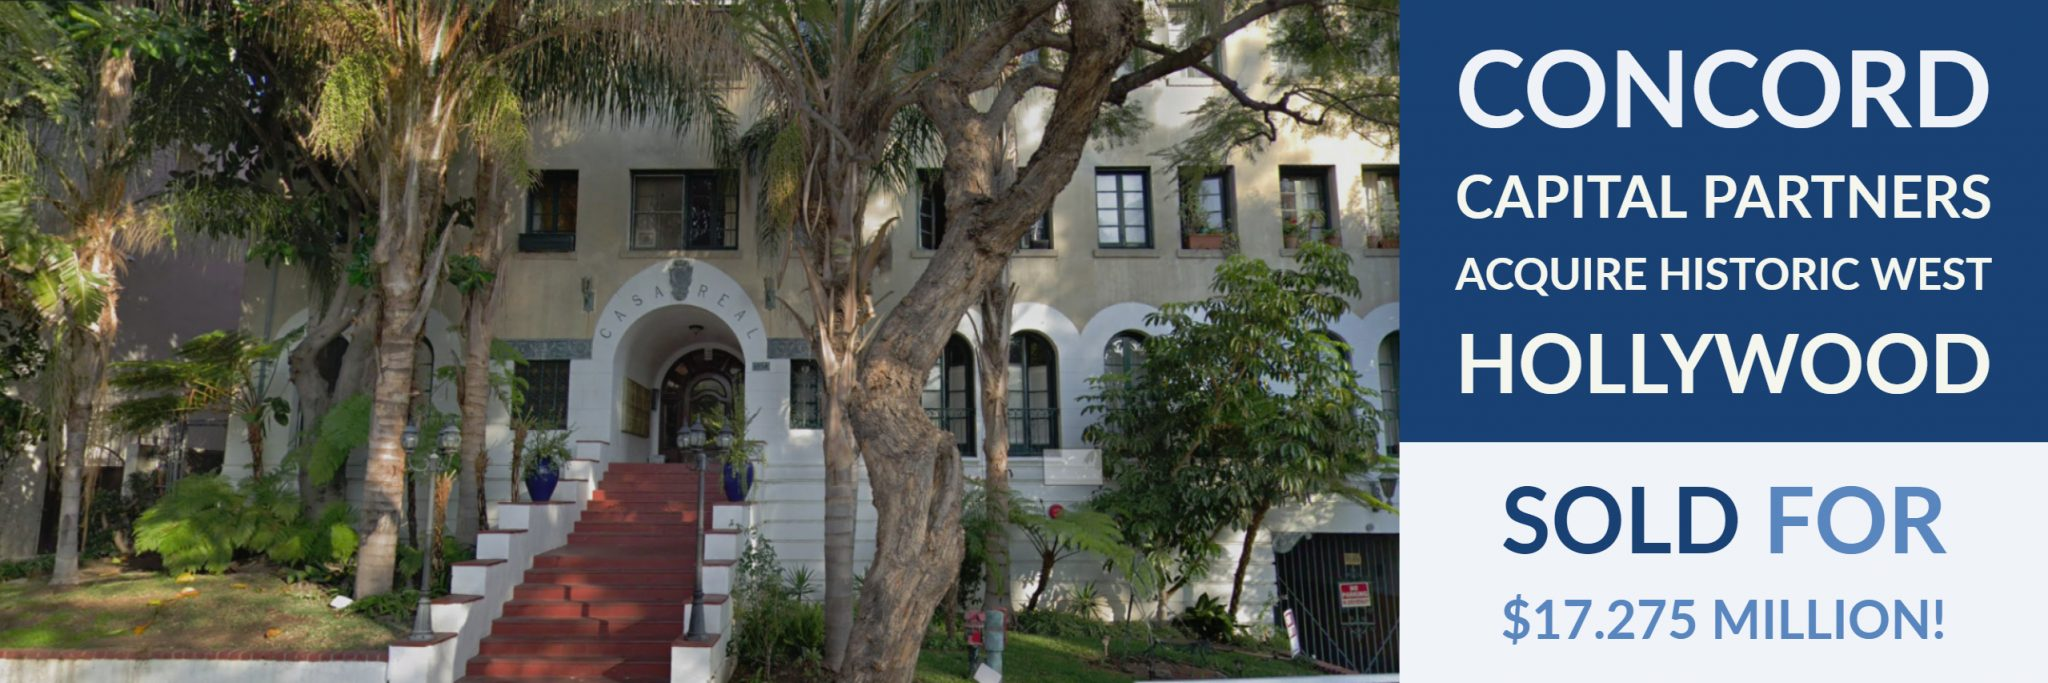 Casa Real West Hollywood Best Real Estate Company in West Hollywood REH Real Estate